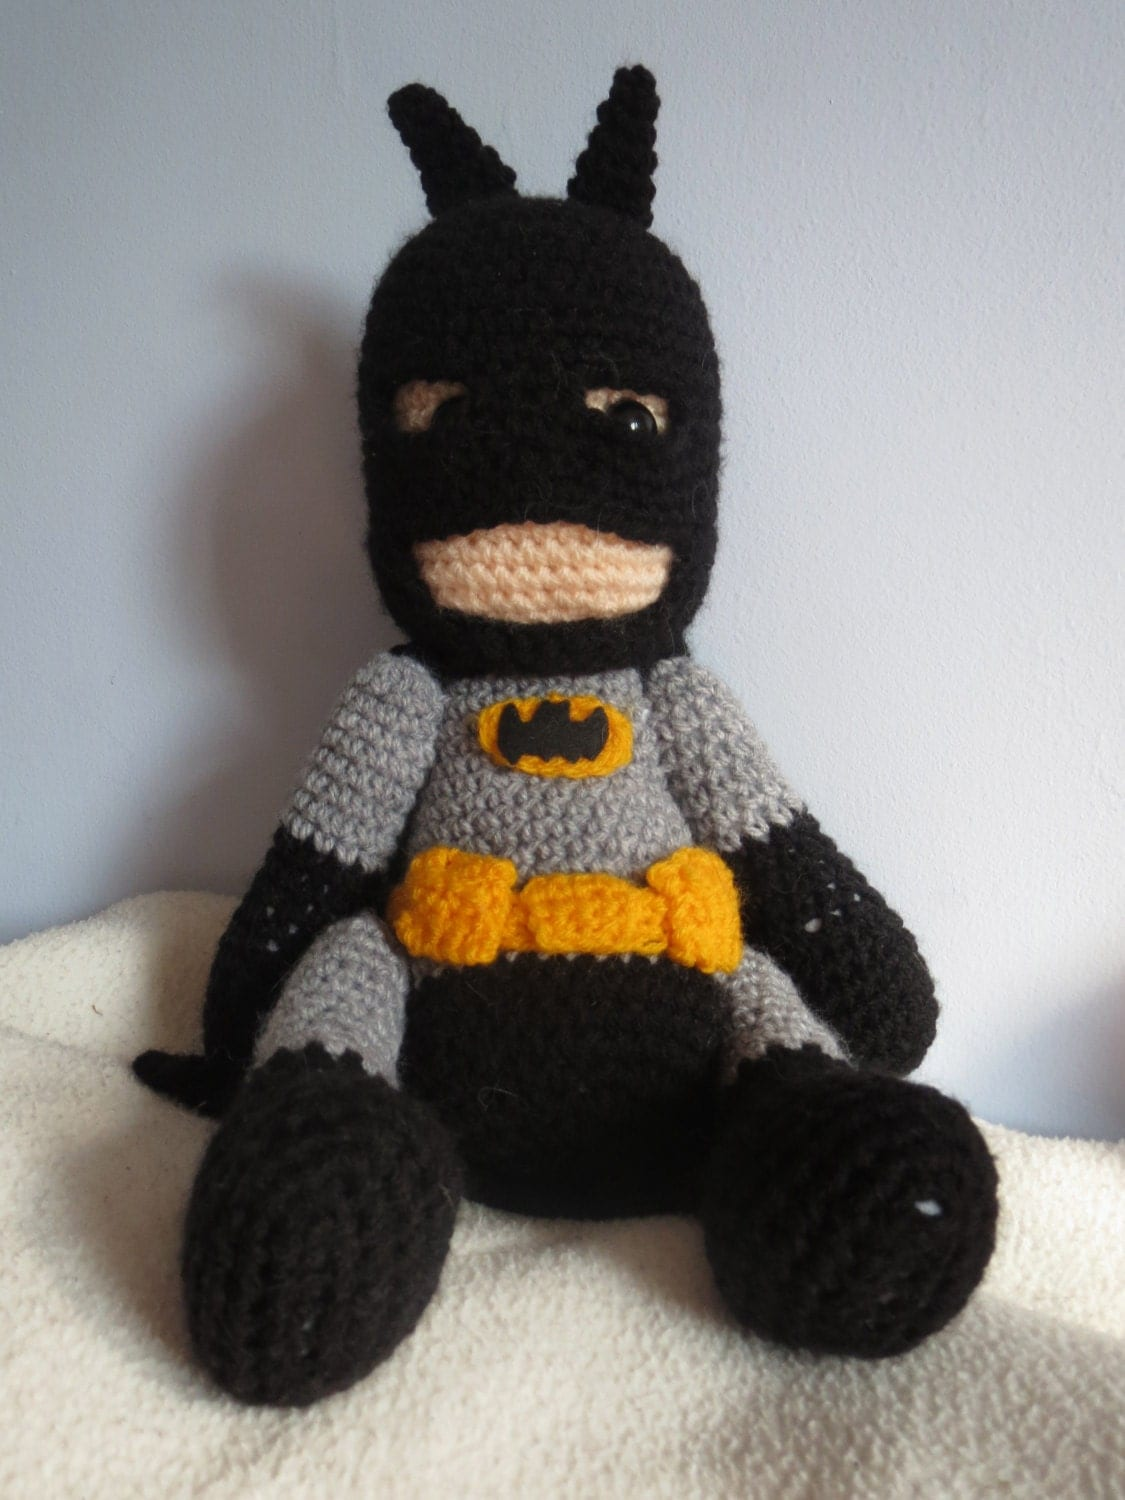 Amigurumi Crochet Batman : Batman crochet amigurumi D.C doll by JustAddAwesome on Etsy